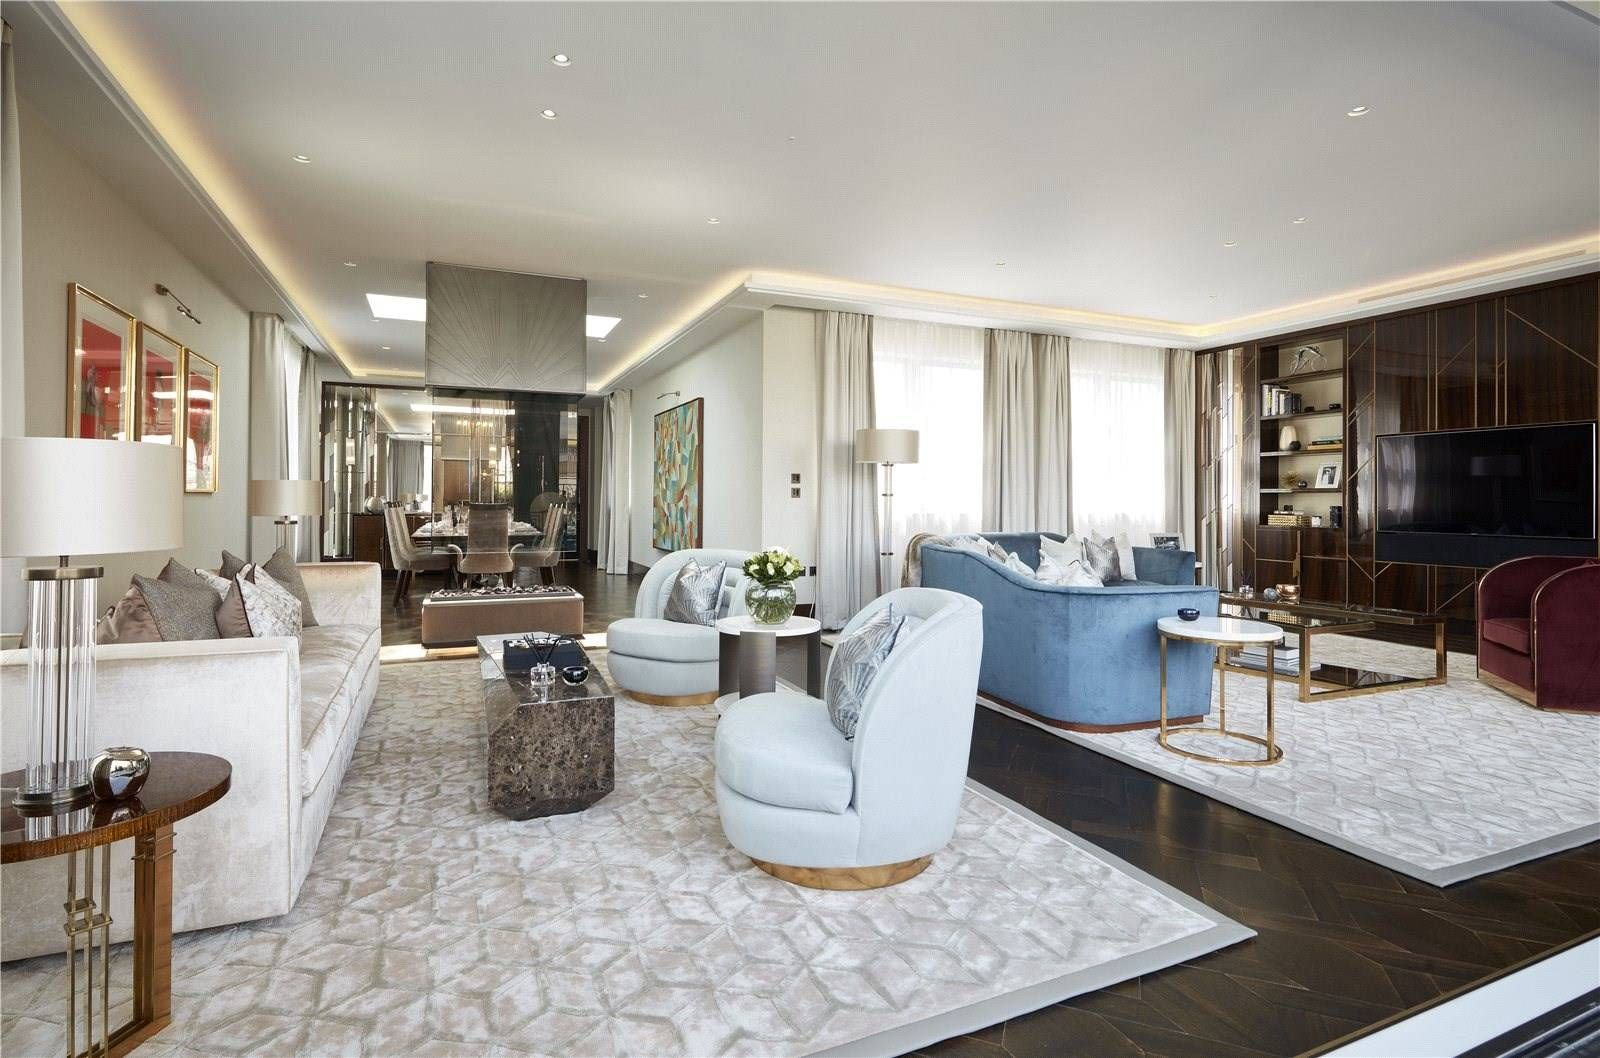 Apartments / Residences for Sale at Greybrook House, Brook